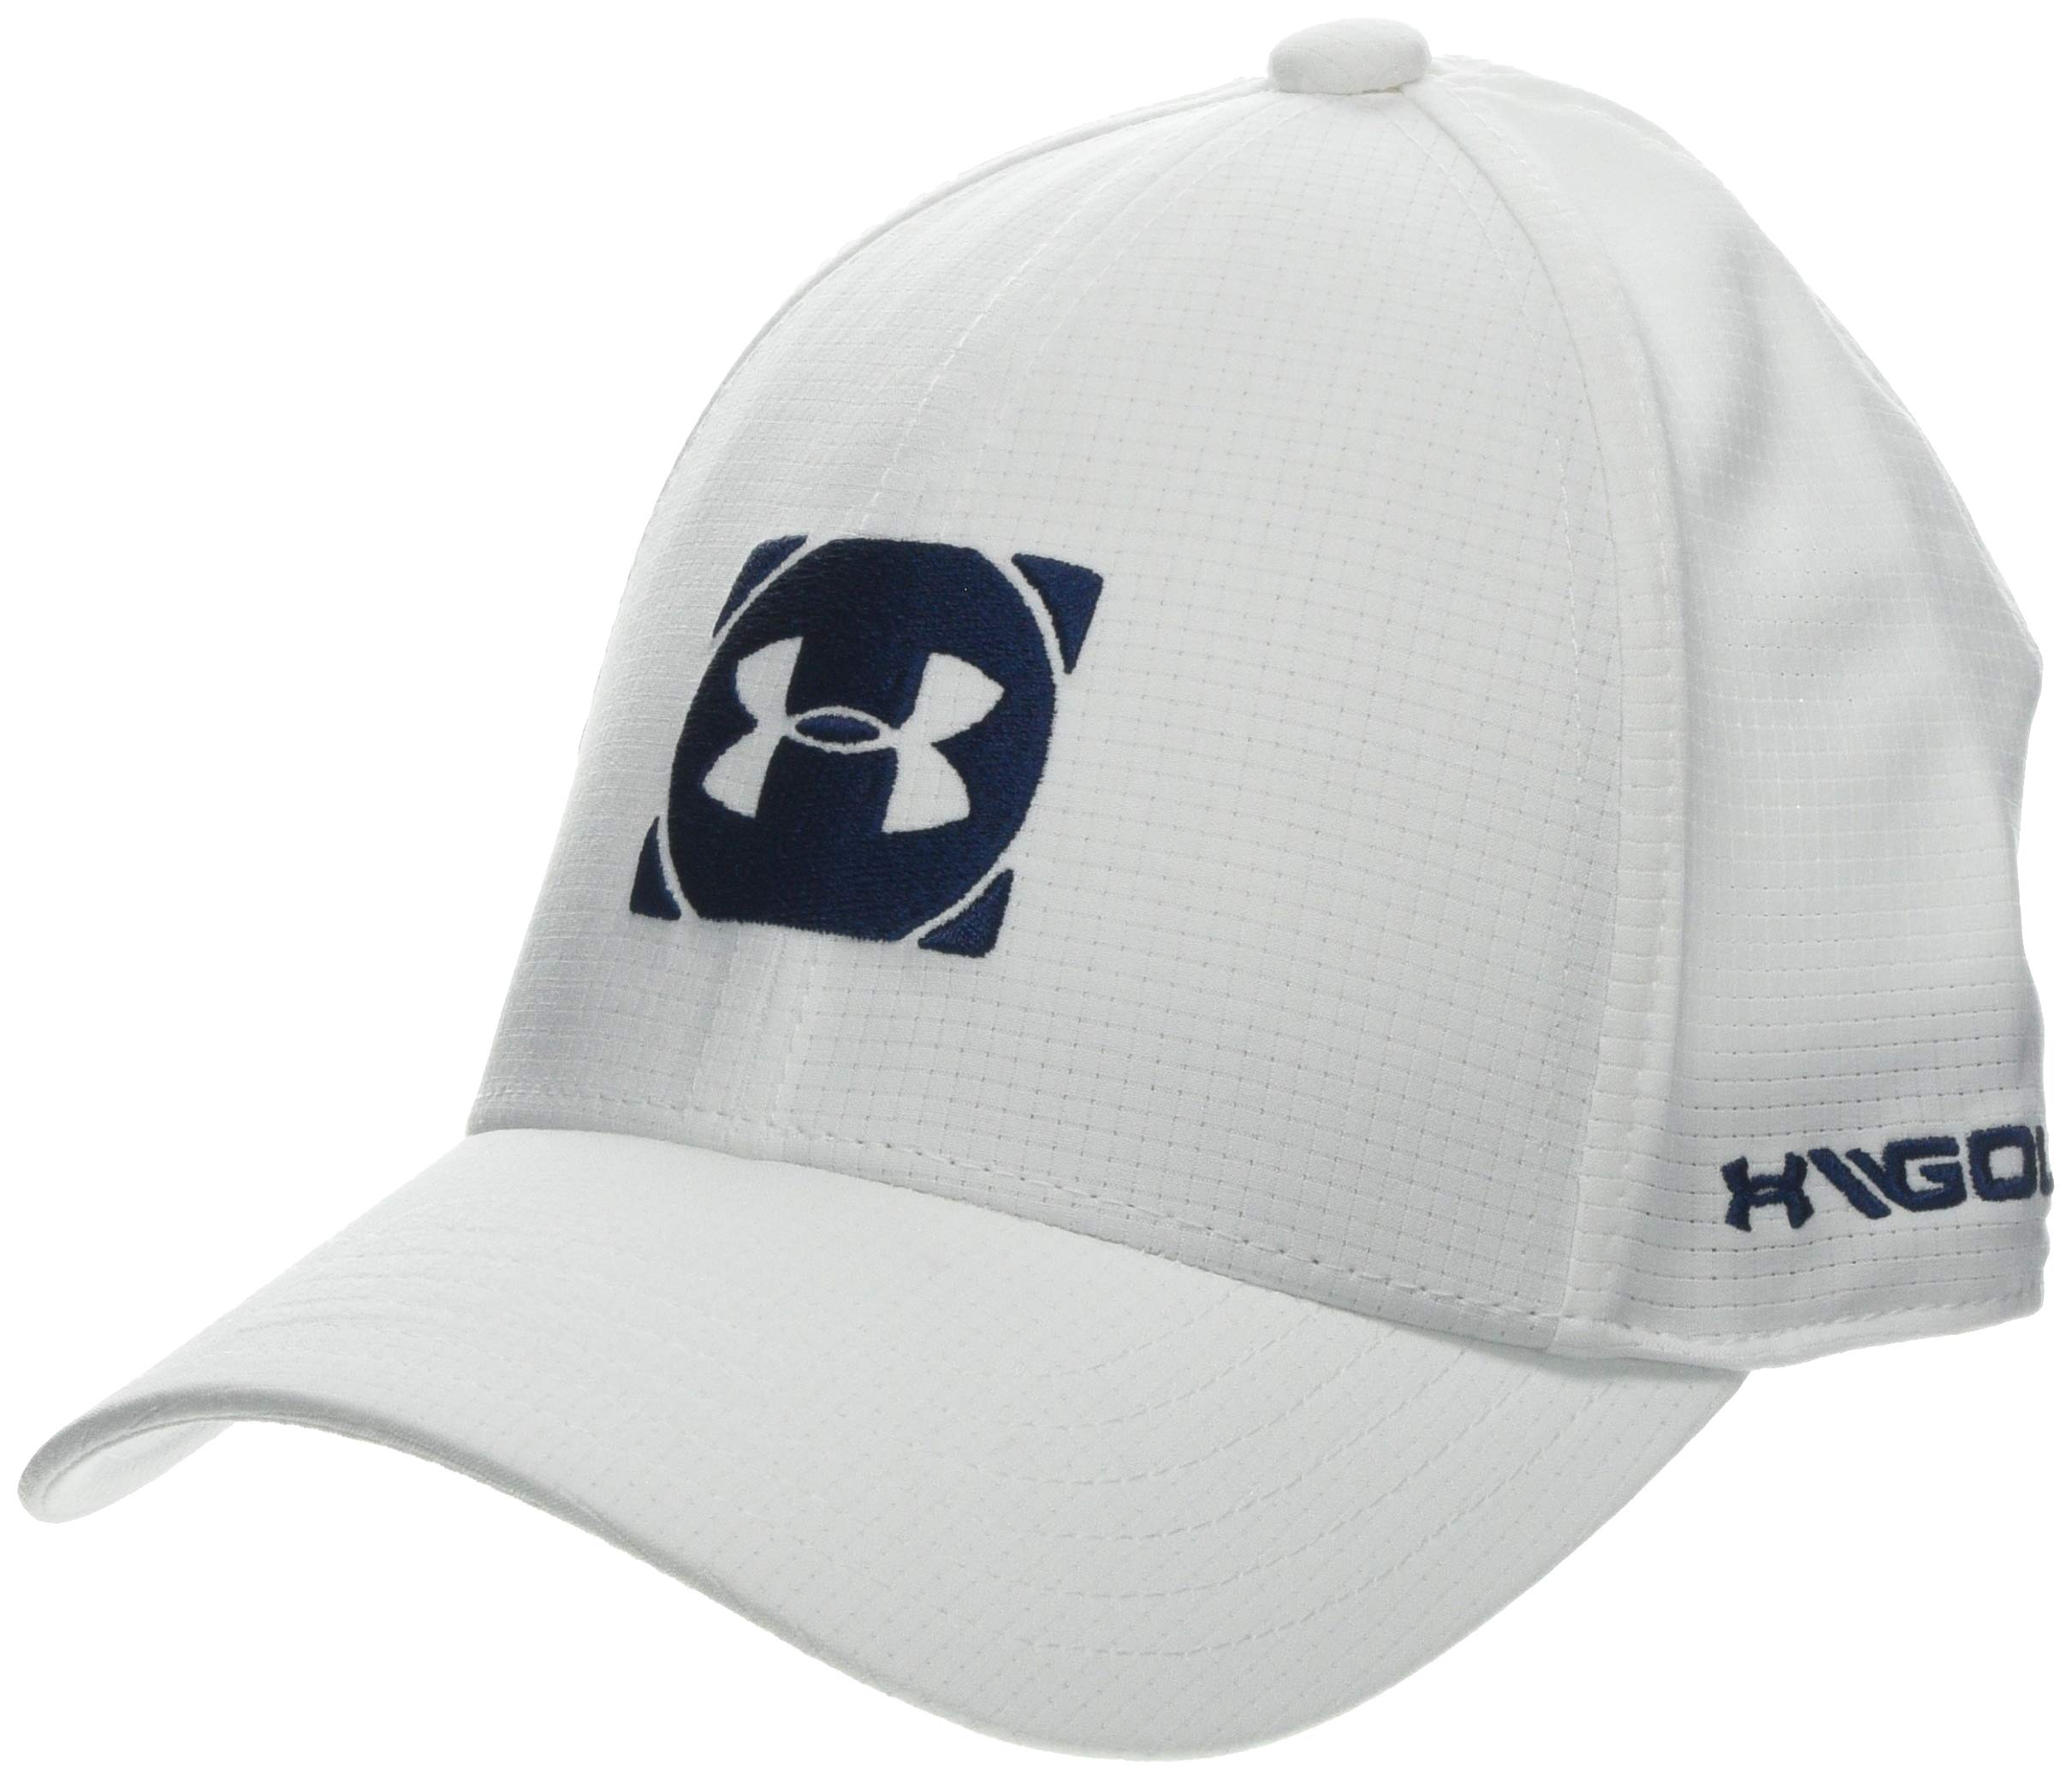 Under Armour Boys' Official Tour Cap 3.0, White (100)/Academy, Youth Small/Medium by Under Armour